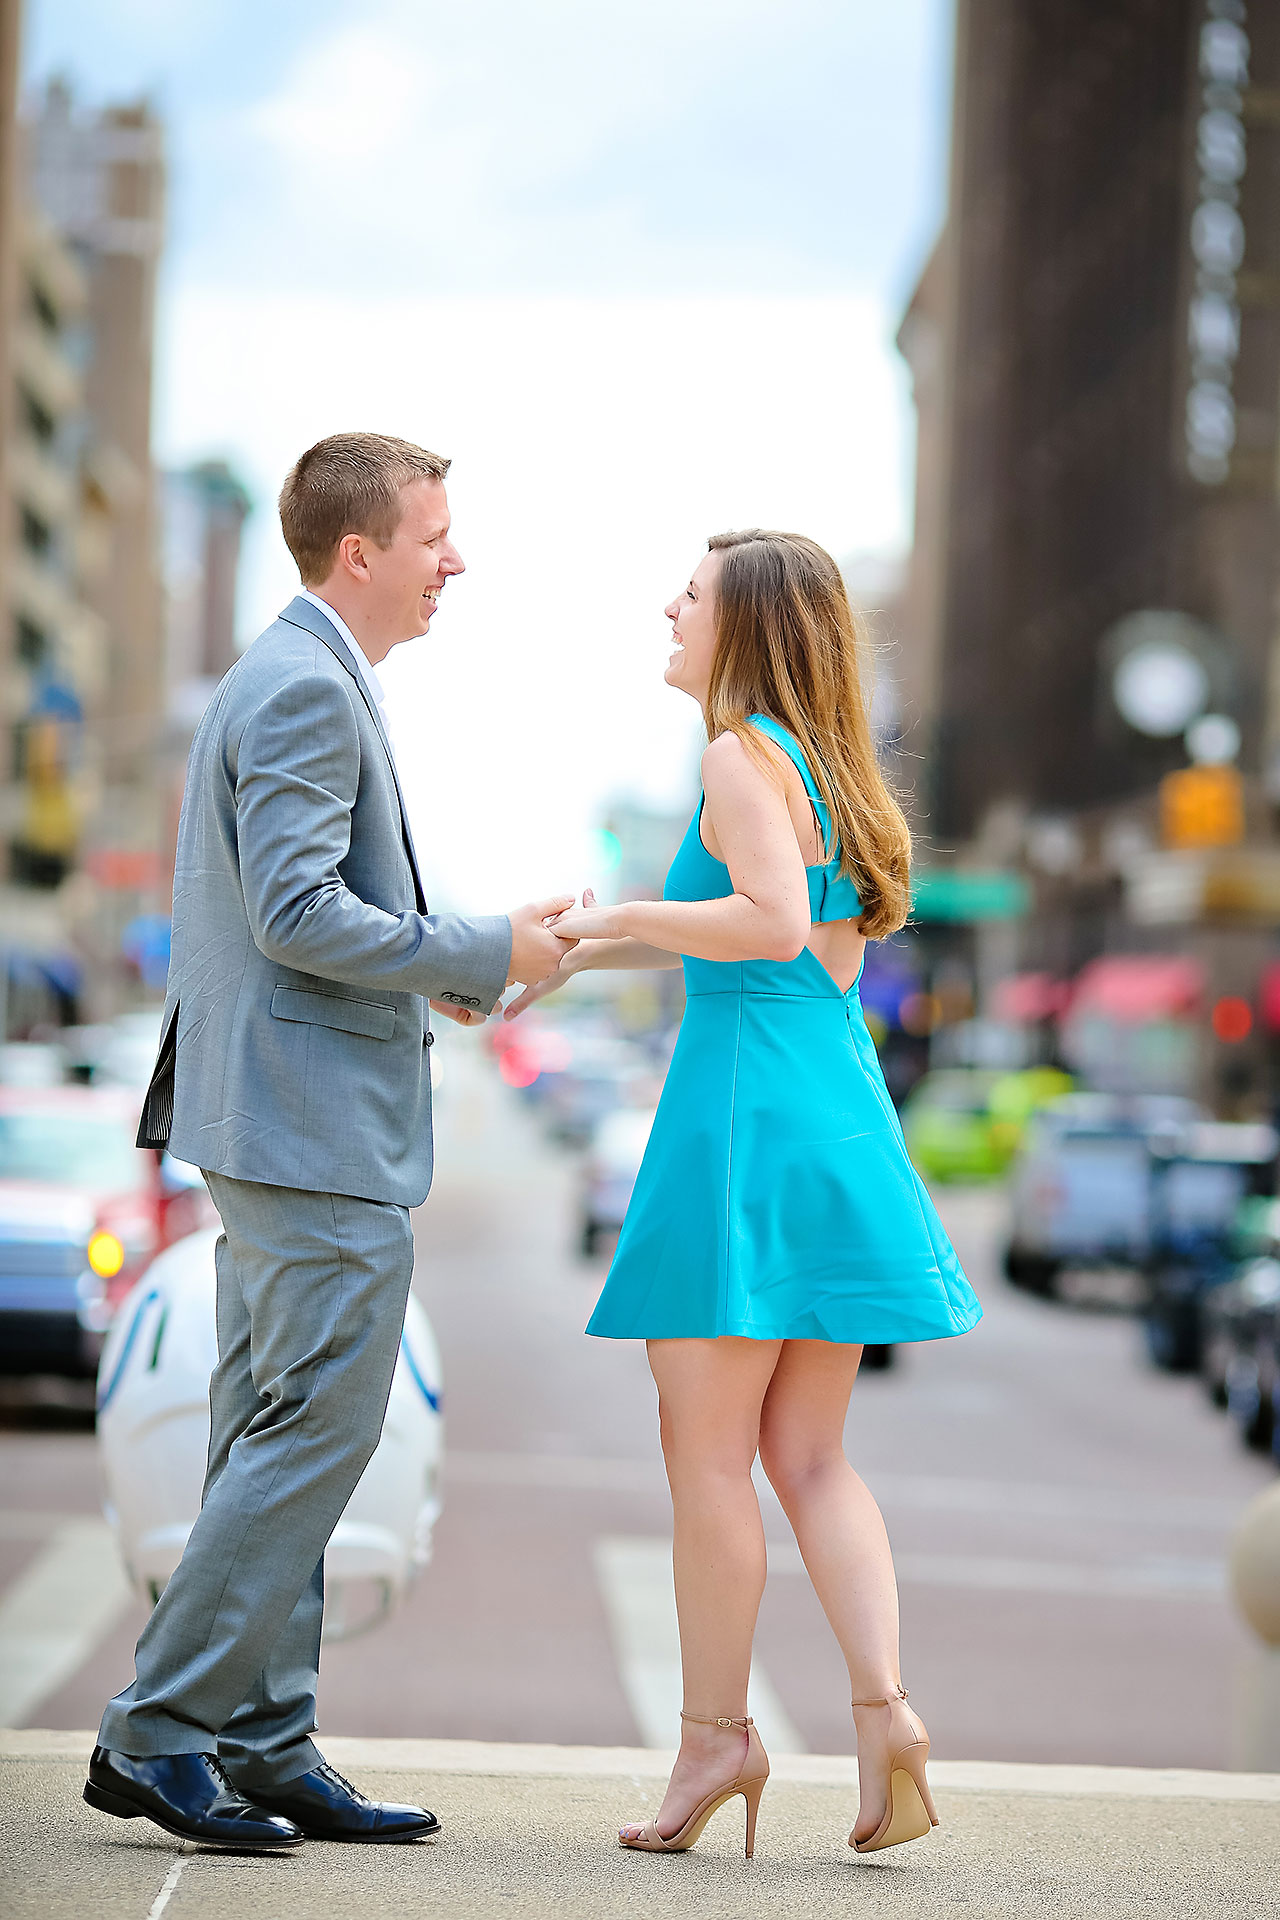 Chelsea Jeff Downtown Indy Engagement Session 008